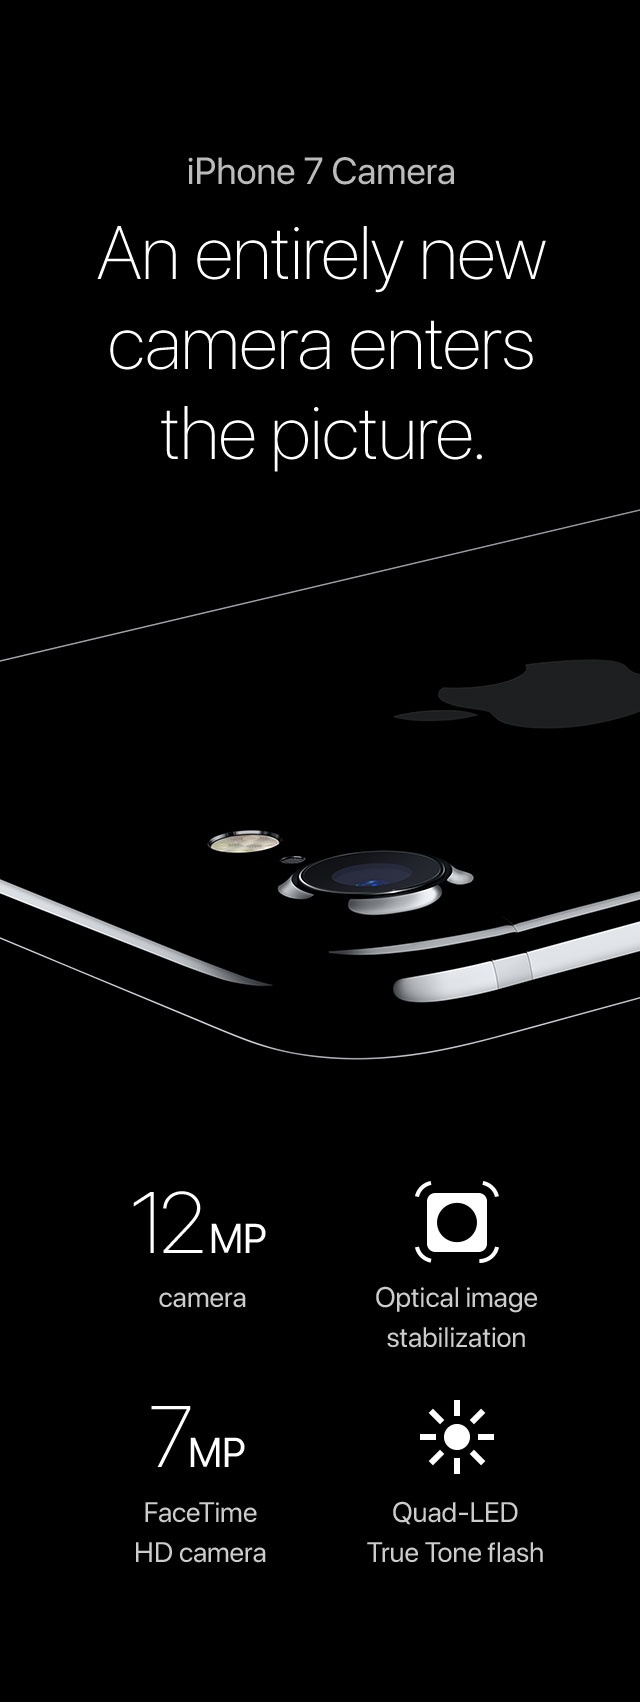 iPhone 7 Camera An entirely new camera enters the picture. 12MP camera/Optical image stabilization/7MP FaceTime HD camera/Quad-LED True Tone flash